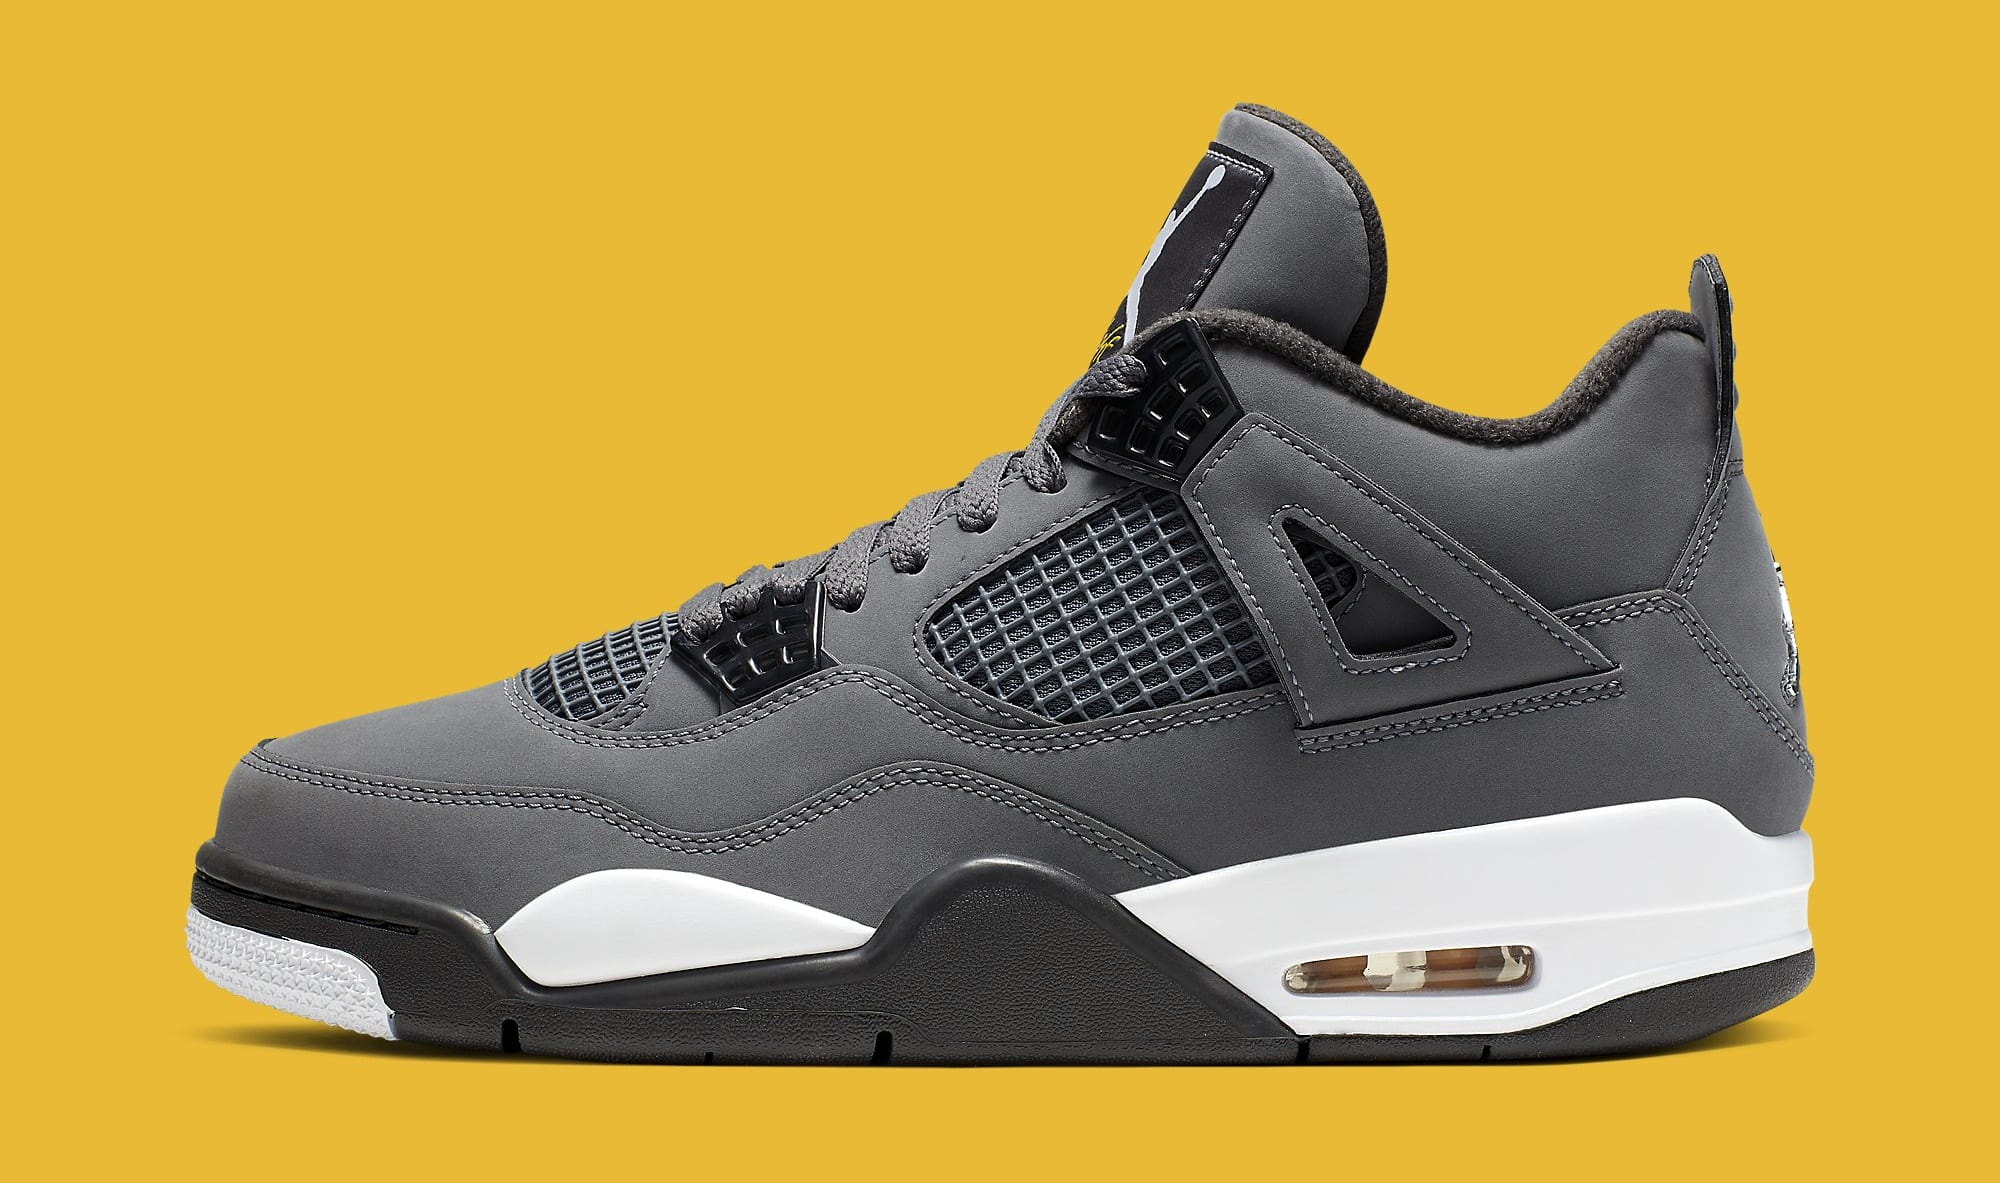 sneakers for cheap 24b15 f5d9d Air Jordan 4 'Cool Grey' 2019 Release Date 308497-007 | Sole ...